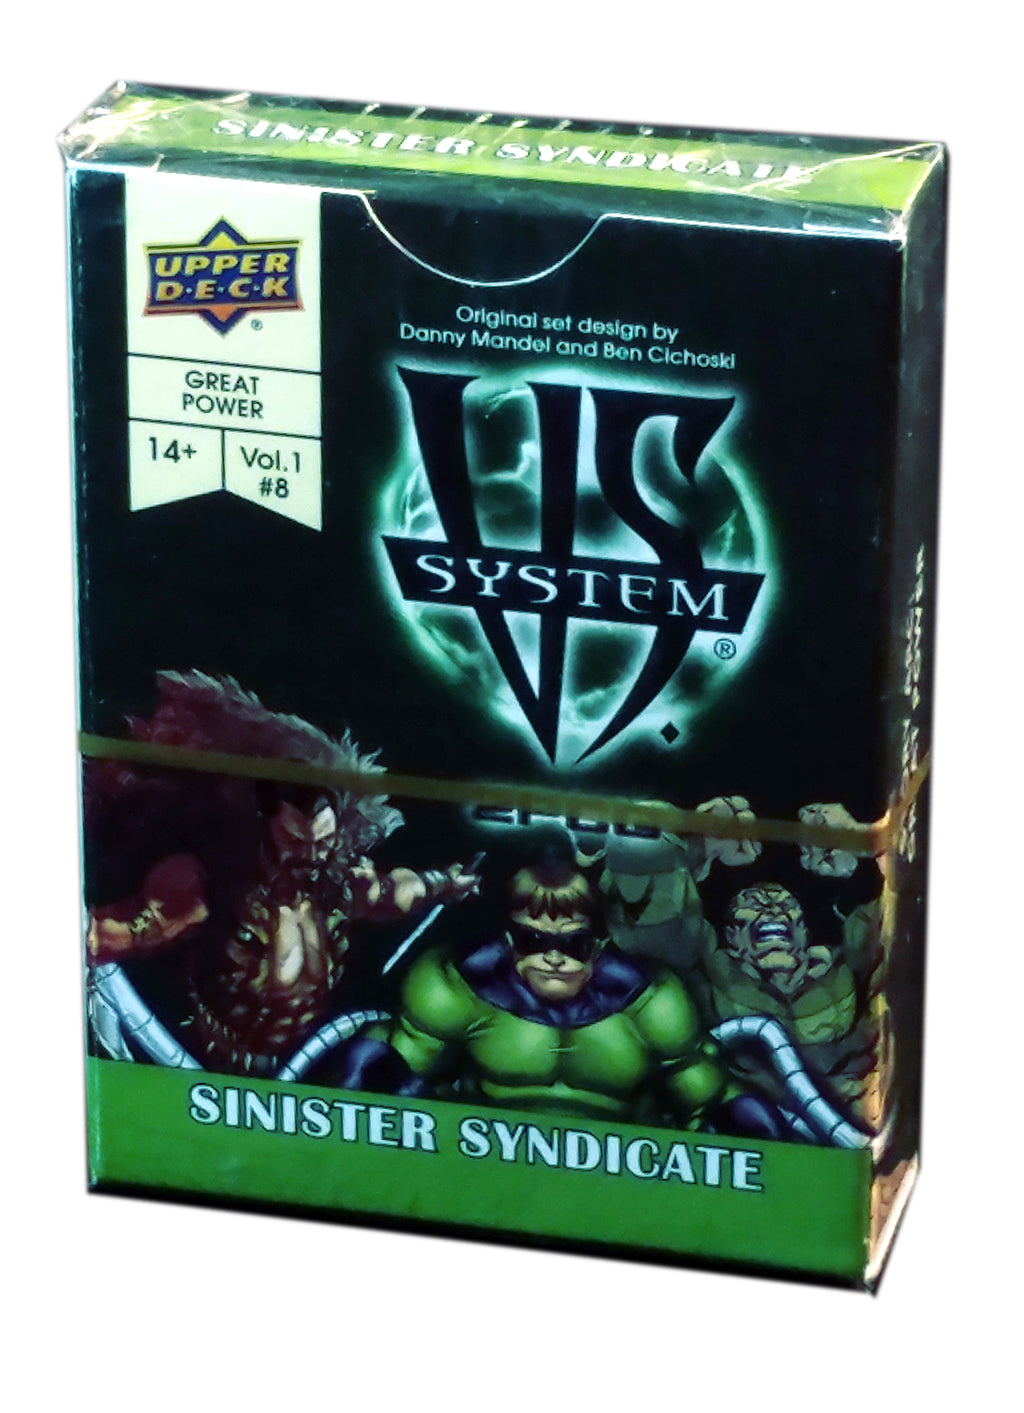 VS System, Sinister Syndicate Expansion